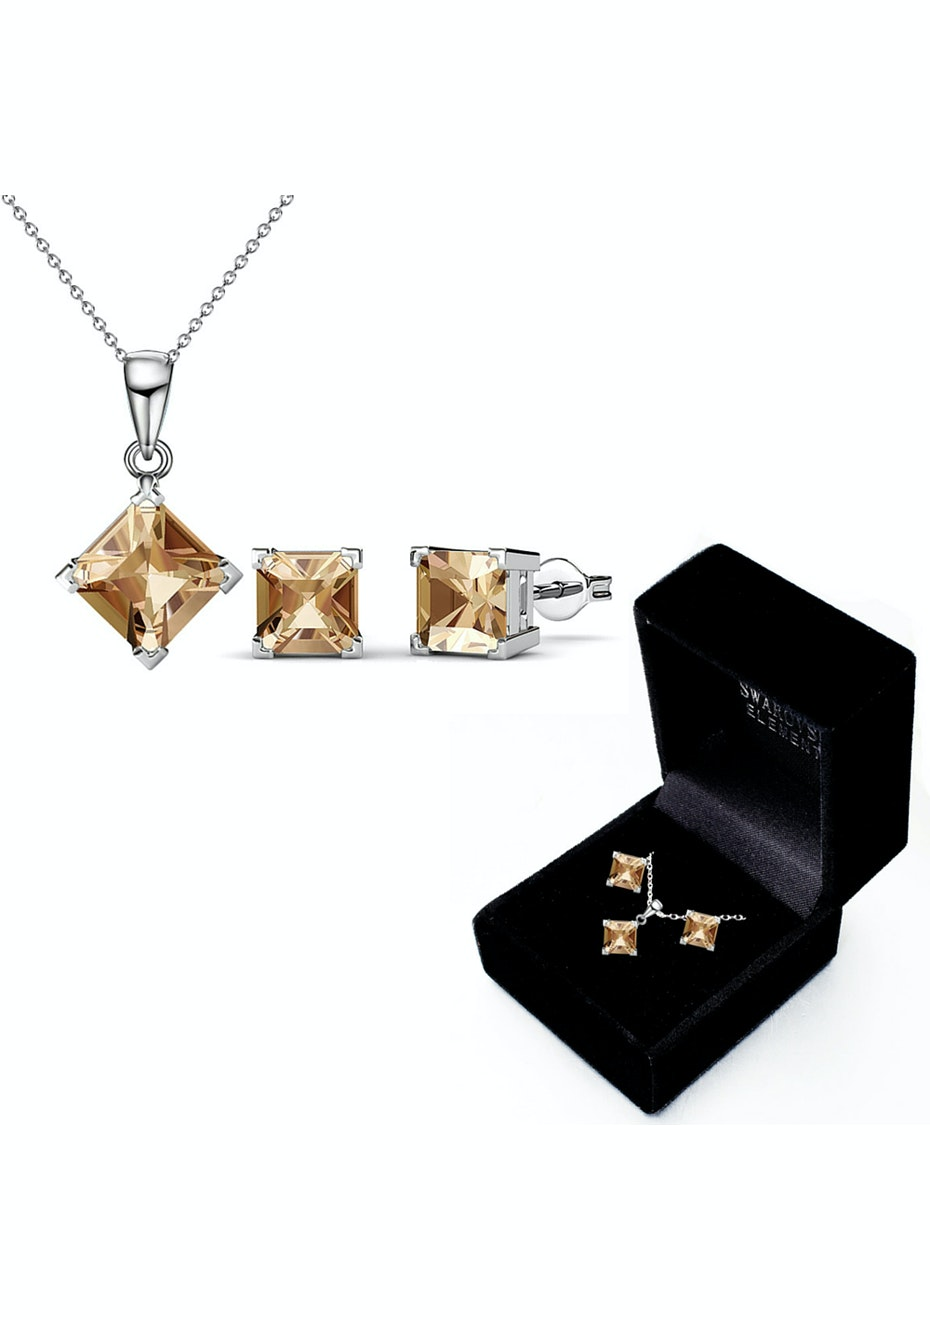 Boxed Matching Set Embellished with Crystals from Swarovski - Campagne